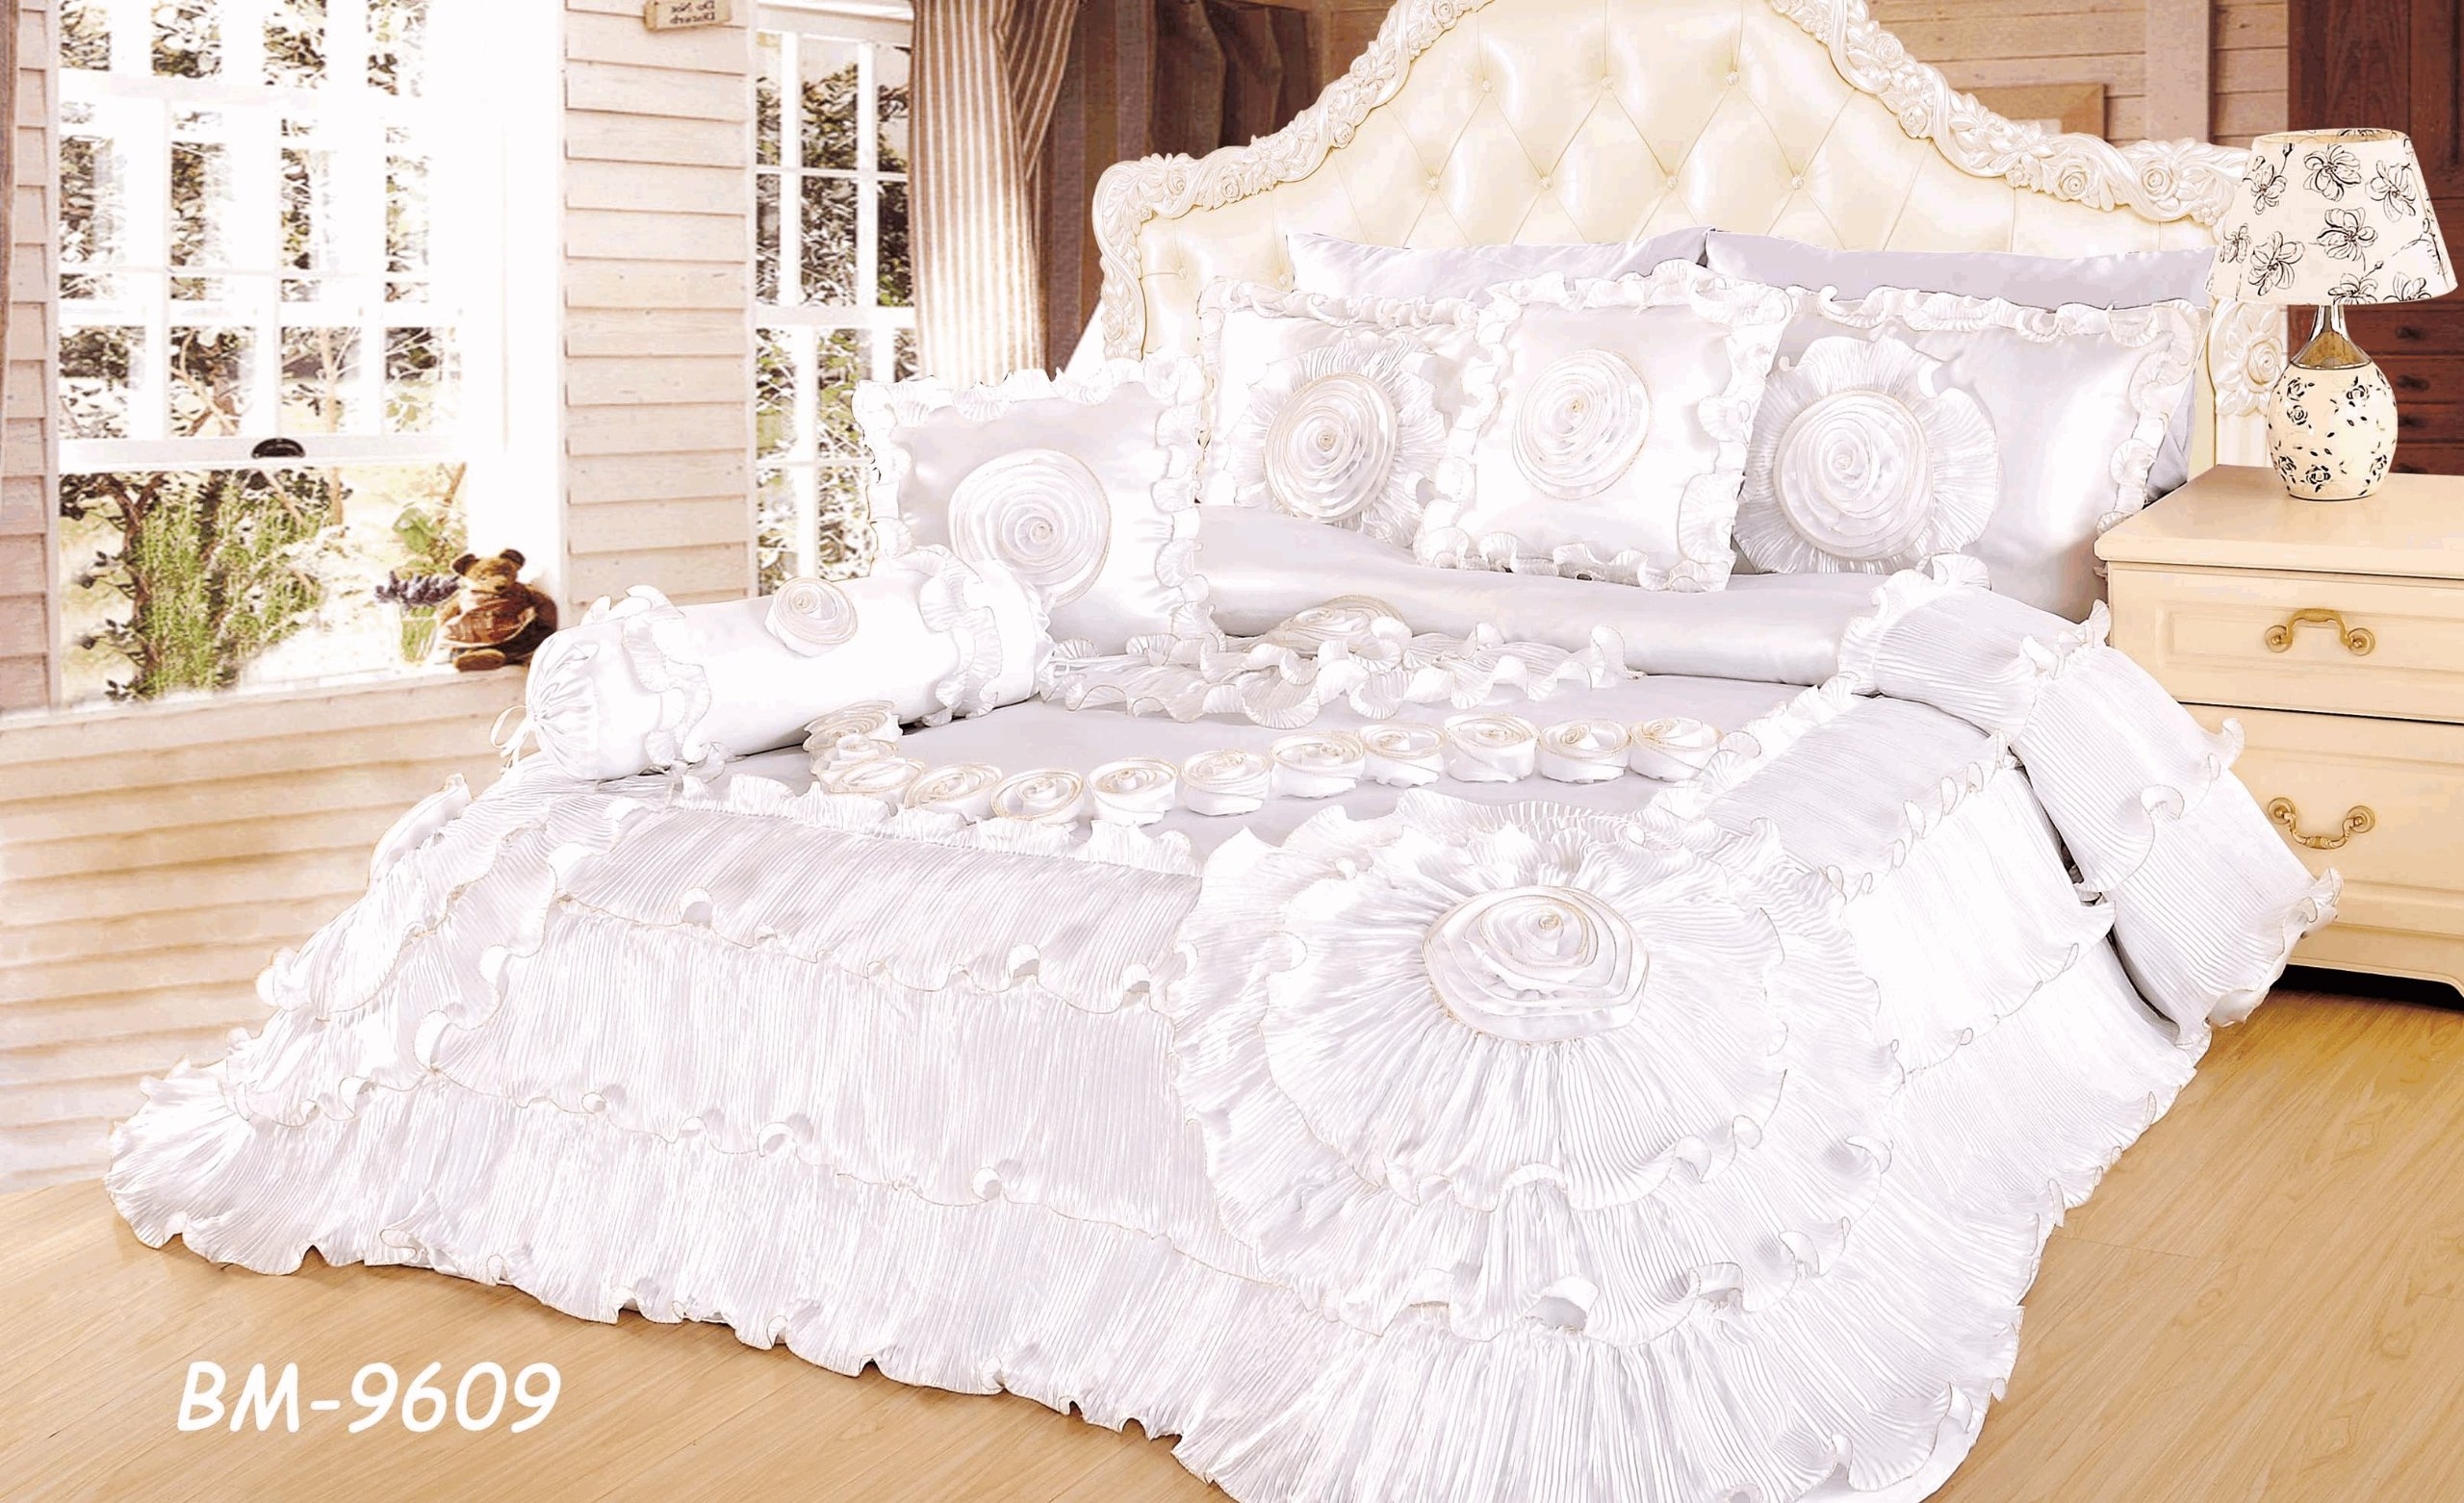 Tache 6 Pieces Royal Wedding Chamber in White Ruffle Comforter Quilt Sets, California King by Tache Home Fashion